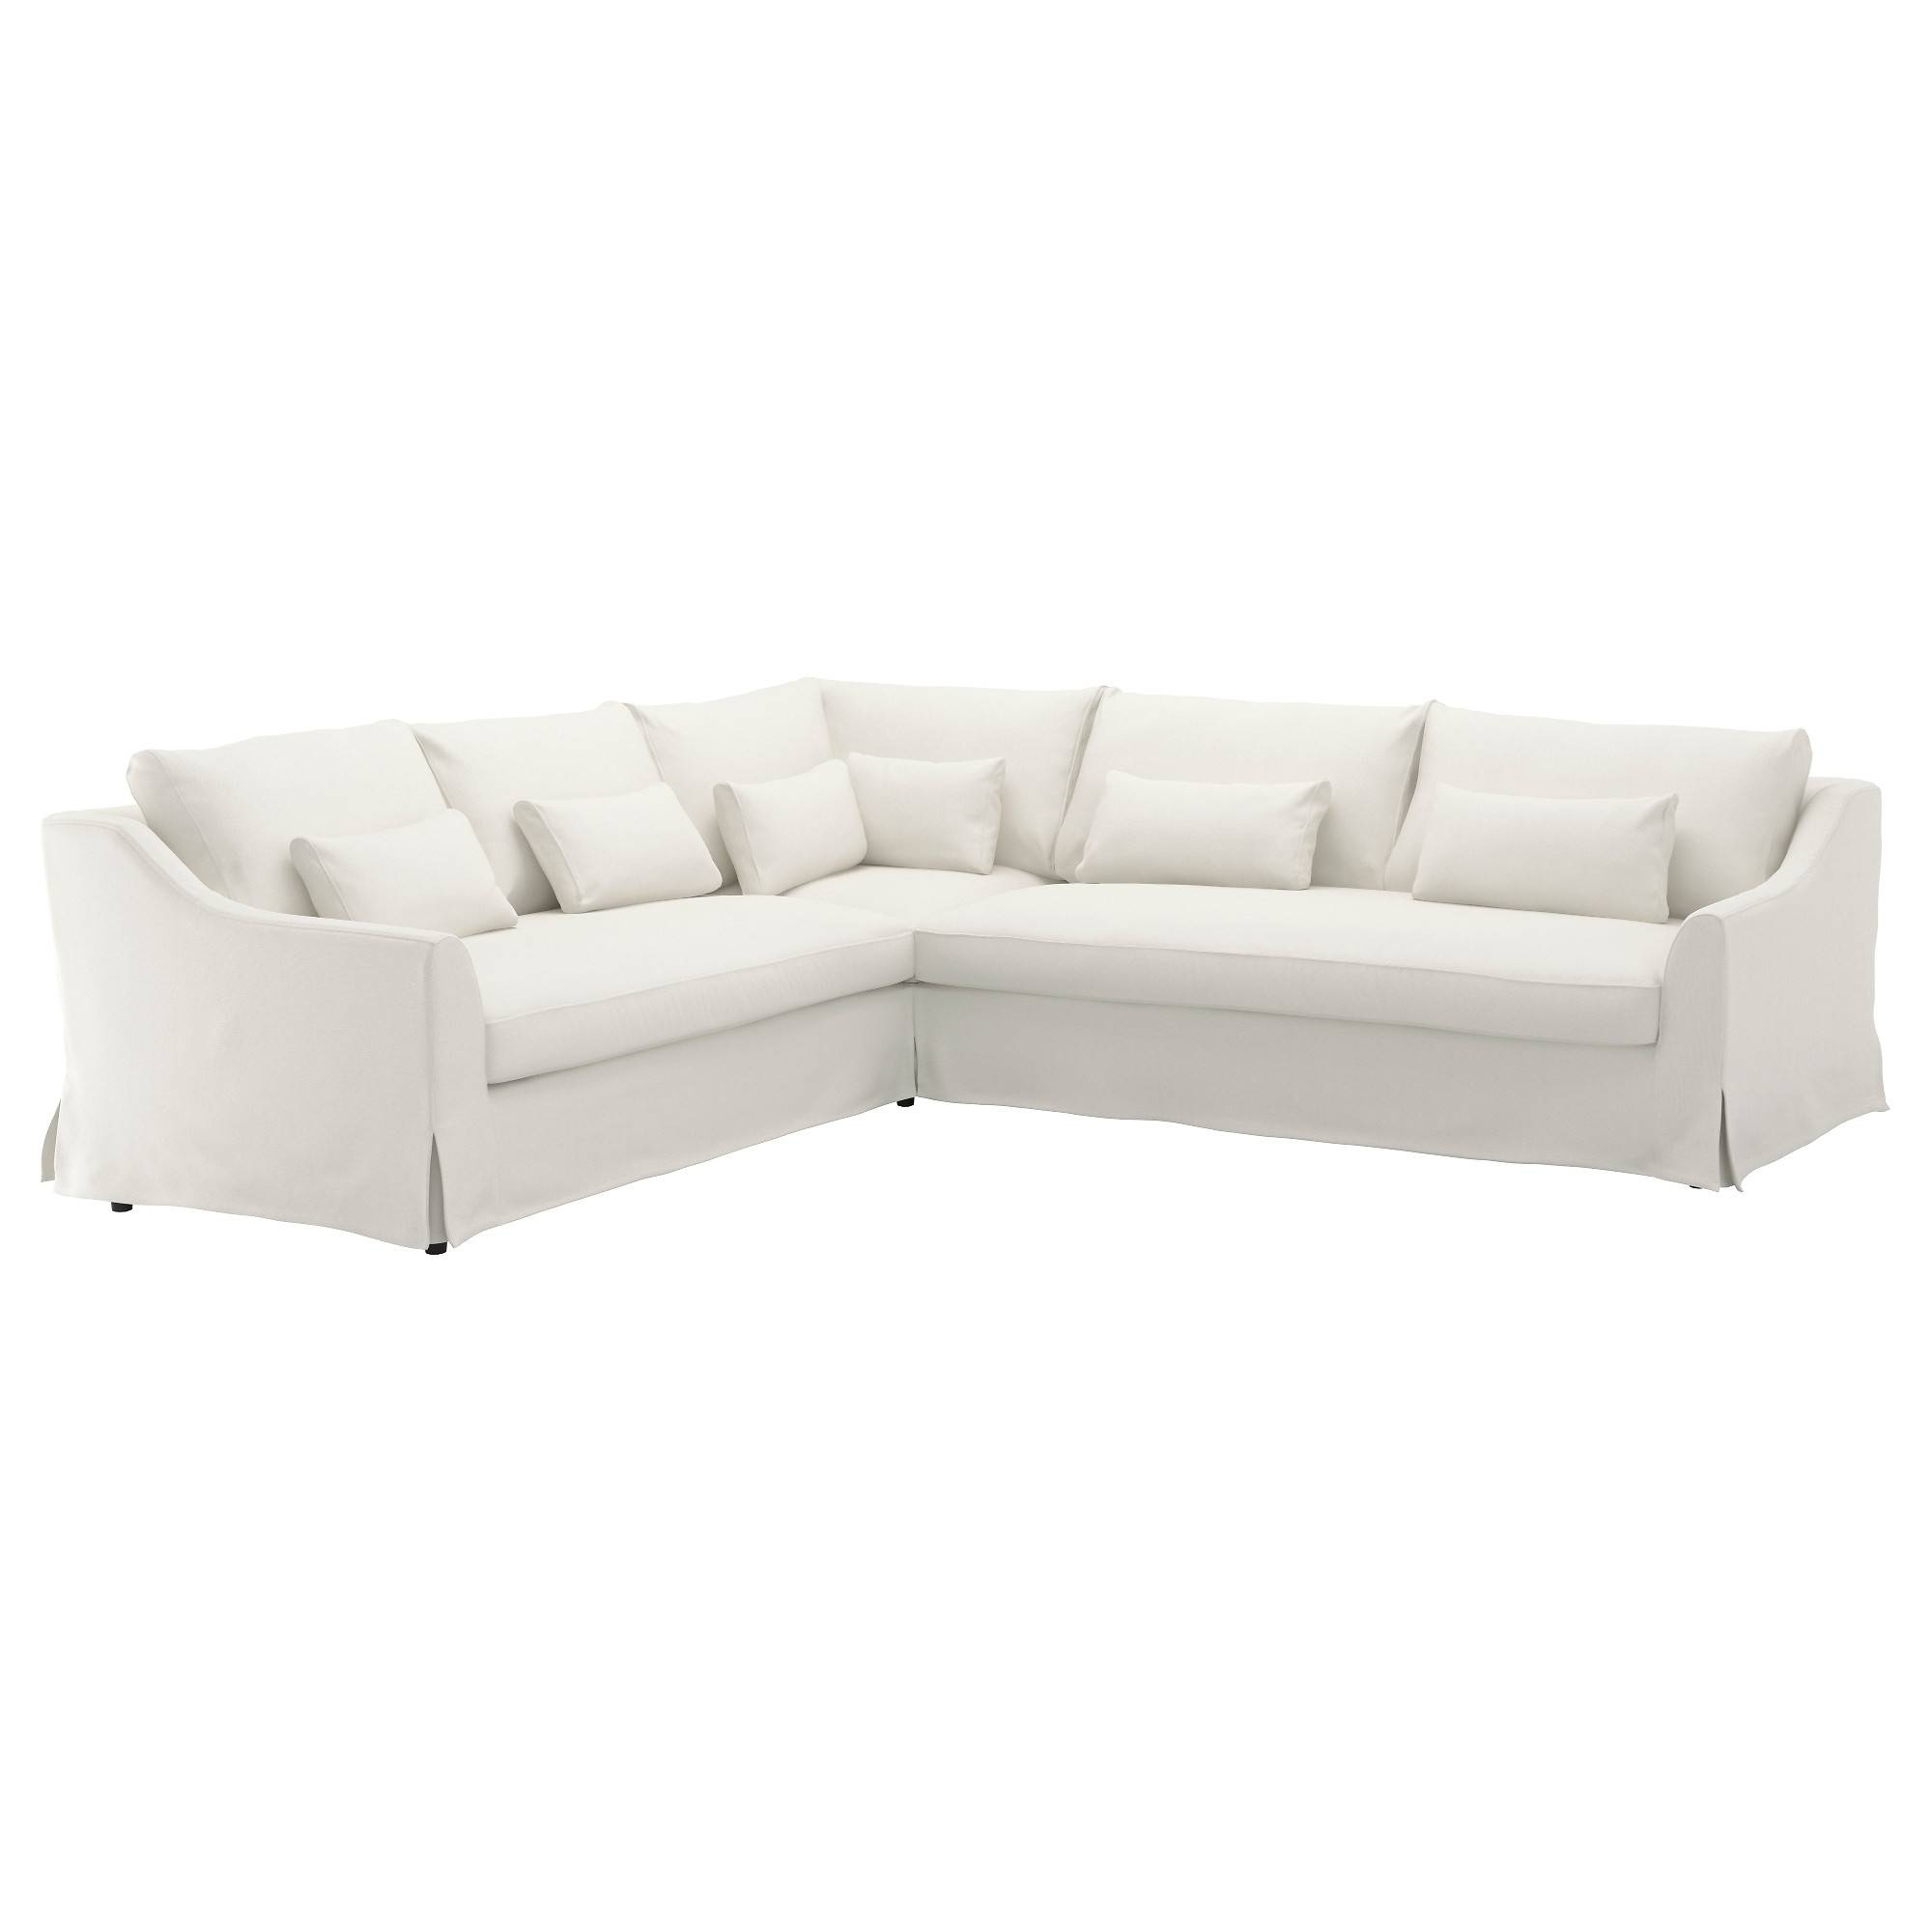 Fabric Sectional Sofas - Ikea regarding 2 Seat Sectional Sofas (Image 11 of 30)